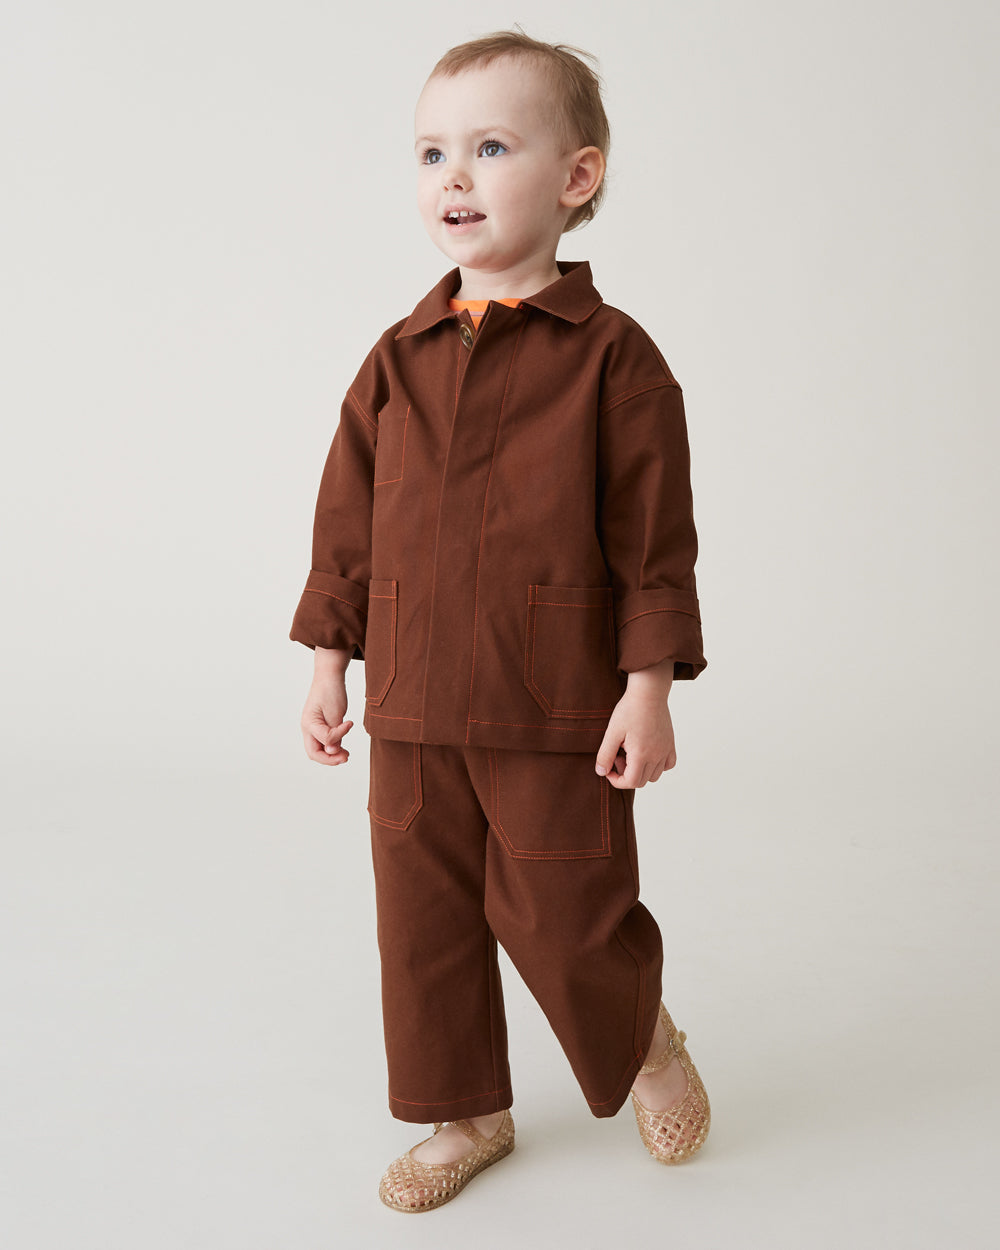 Chatham Trouser in Brown